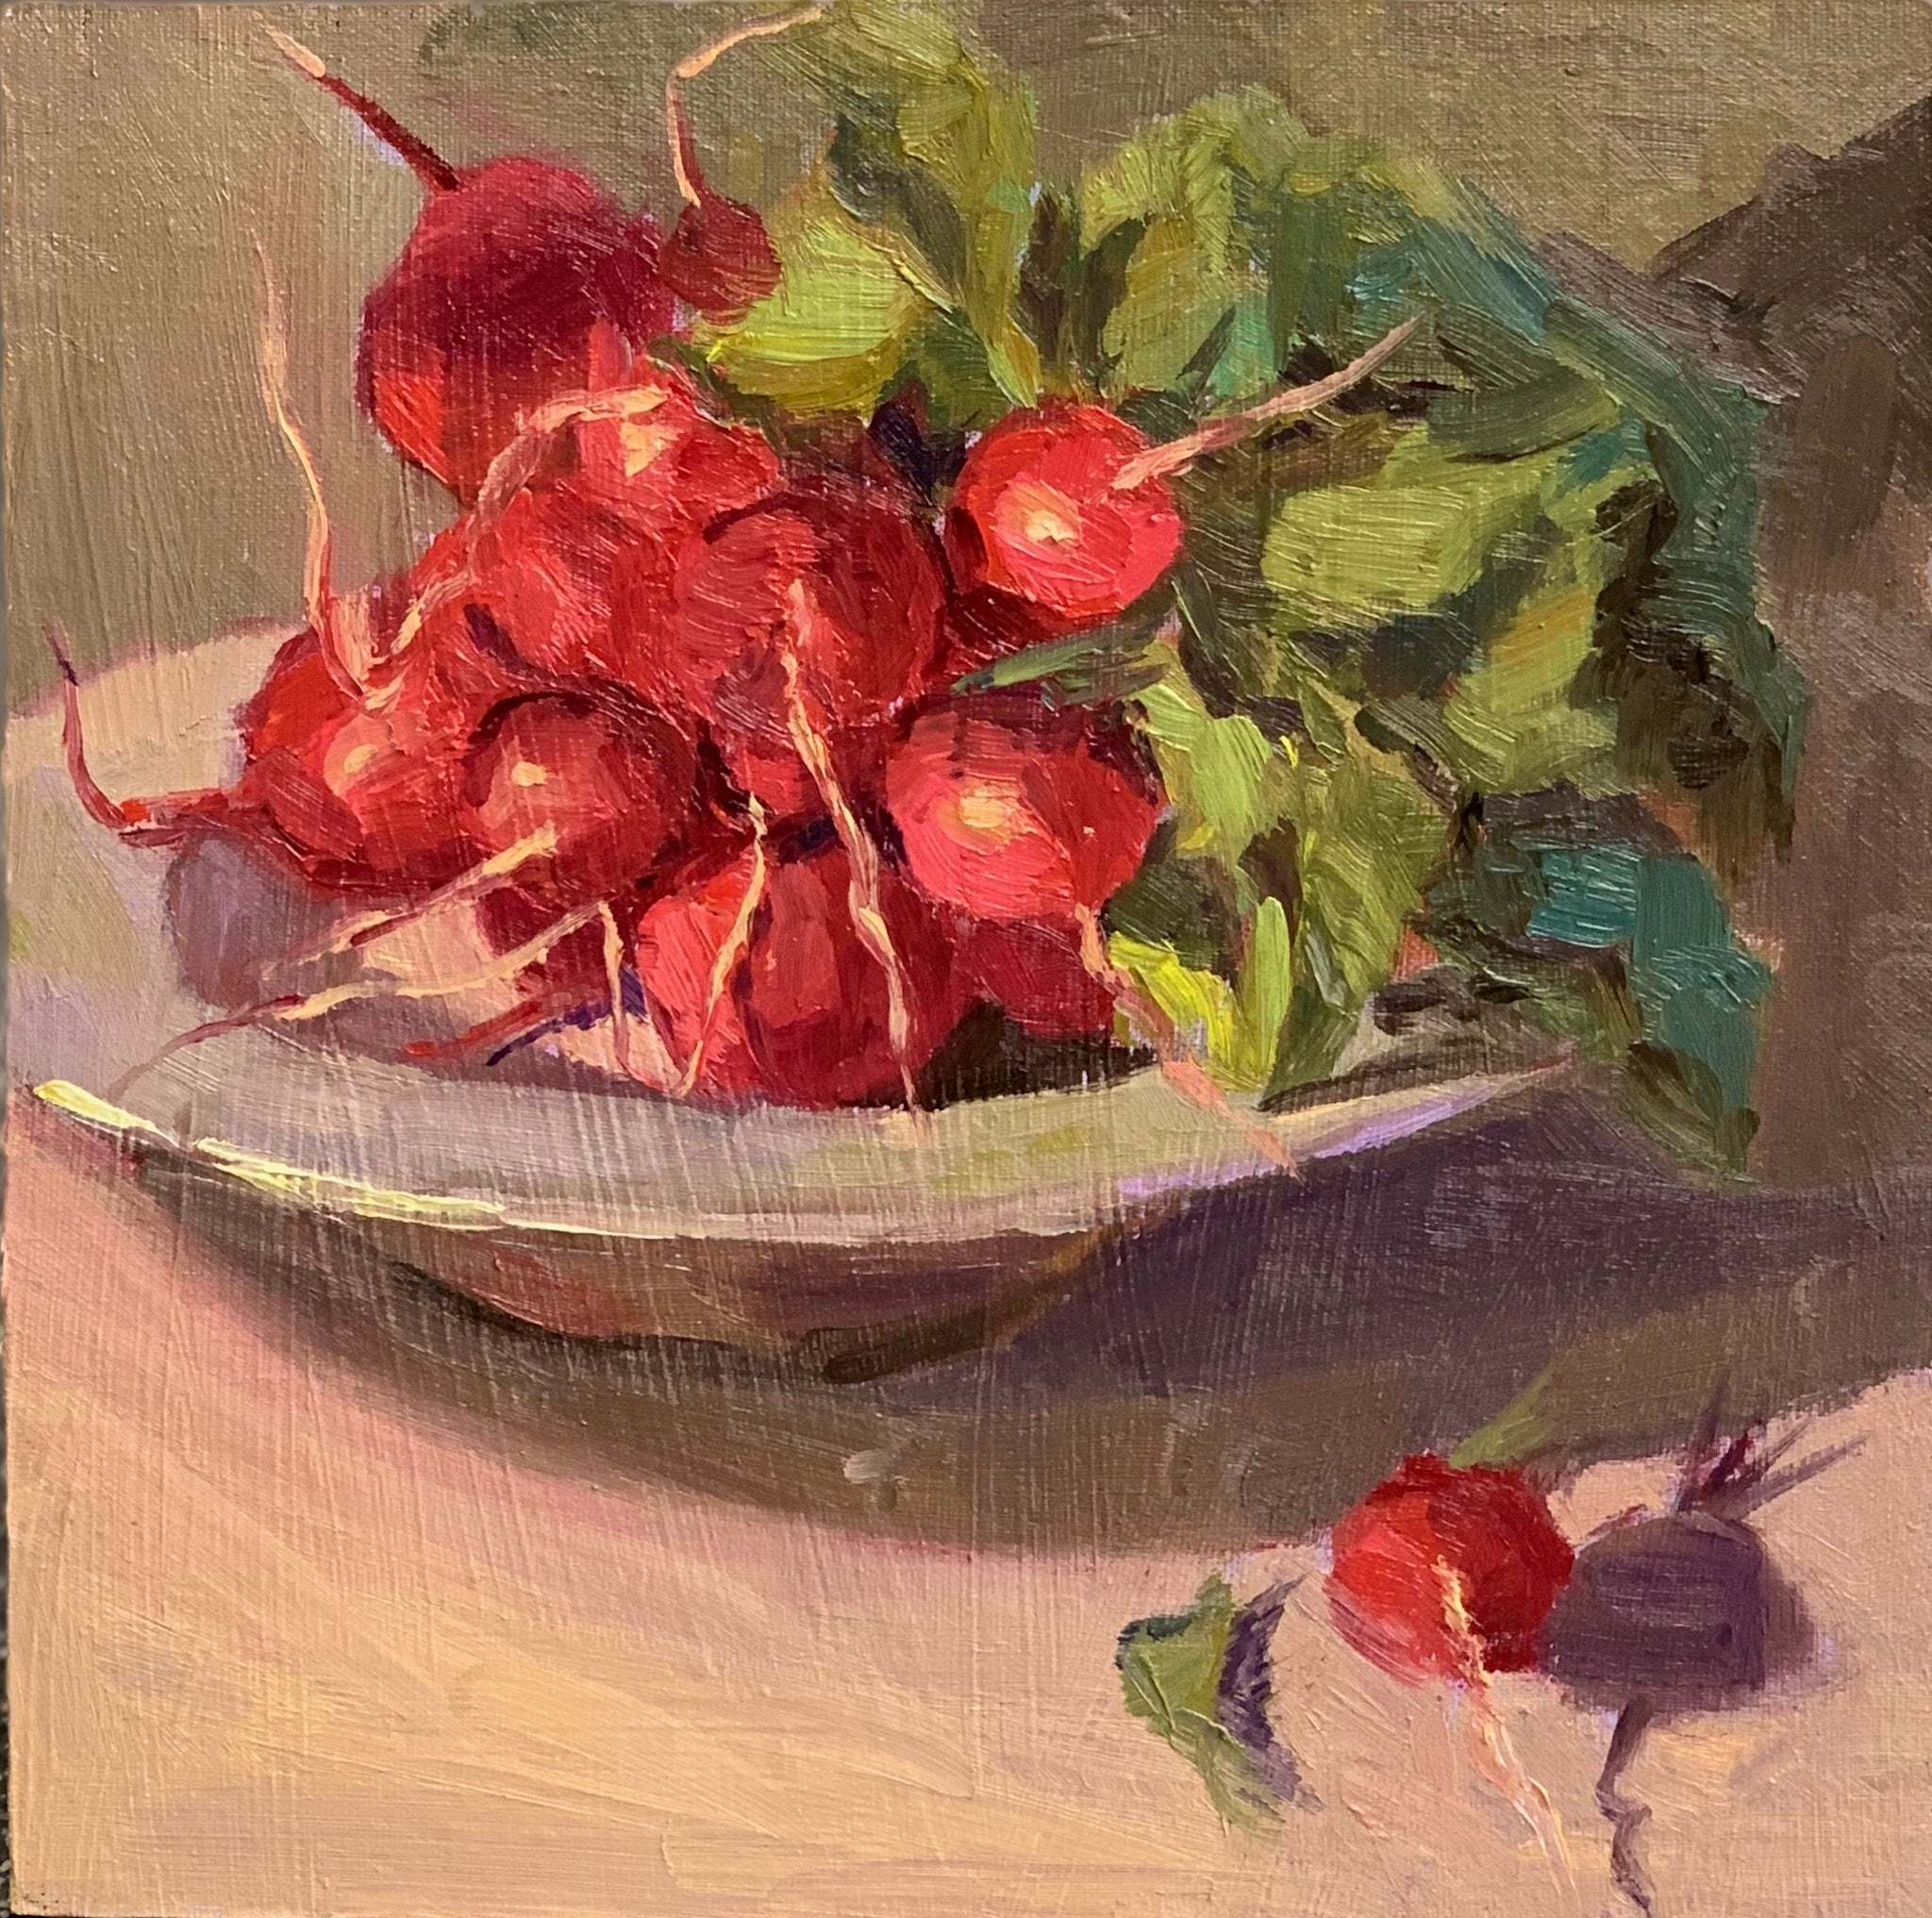 Bowl of Radishes - Original Oil Painting